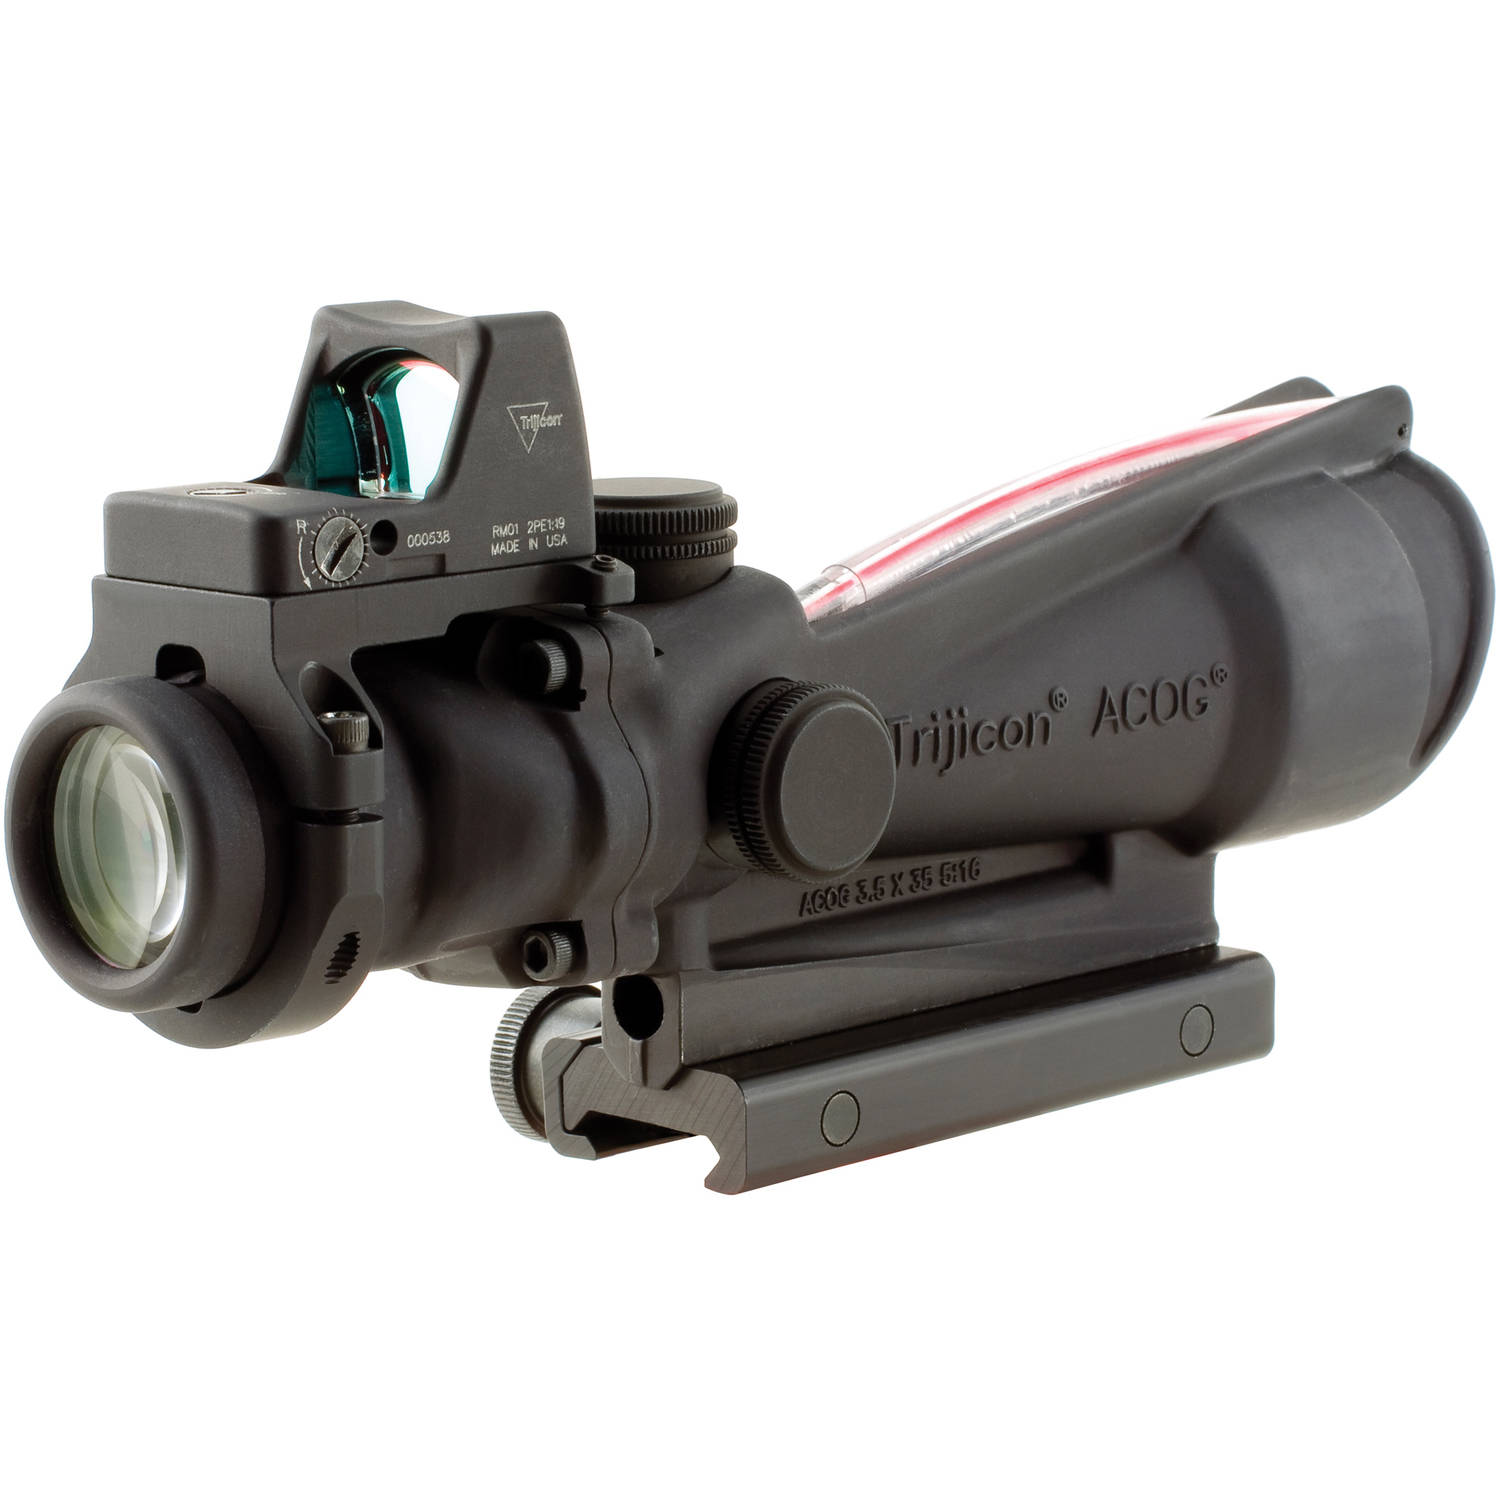 Trijicon ACOG Rifle Scope, 3.5X35, Red Crosshair Reticle .223, Includes 4.0 MOA RMR, TA51 Mount, Matte by Trijicon